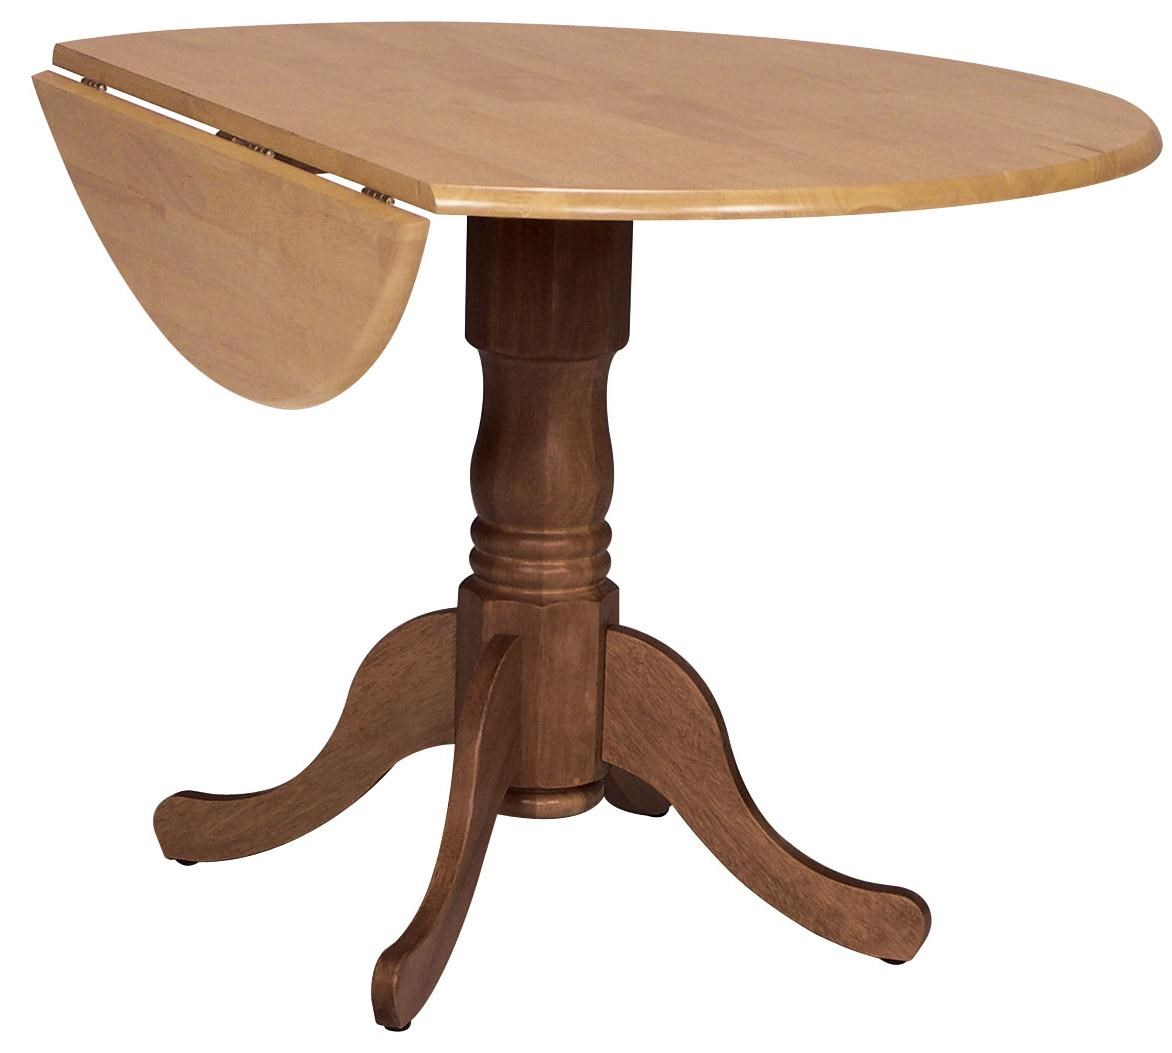 Beau ... Round Drop Leaf Pedestal Table. John Thomas Dining Essentials42 ...